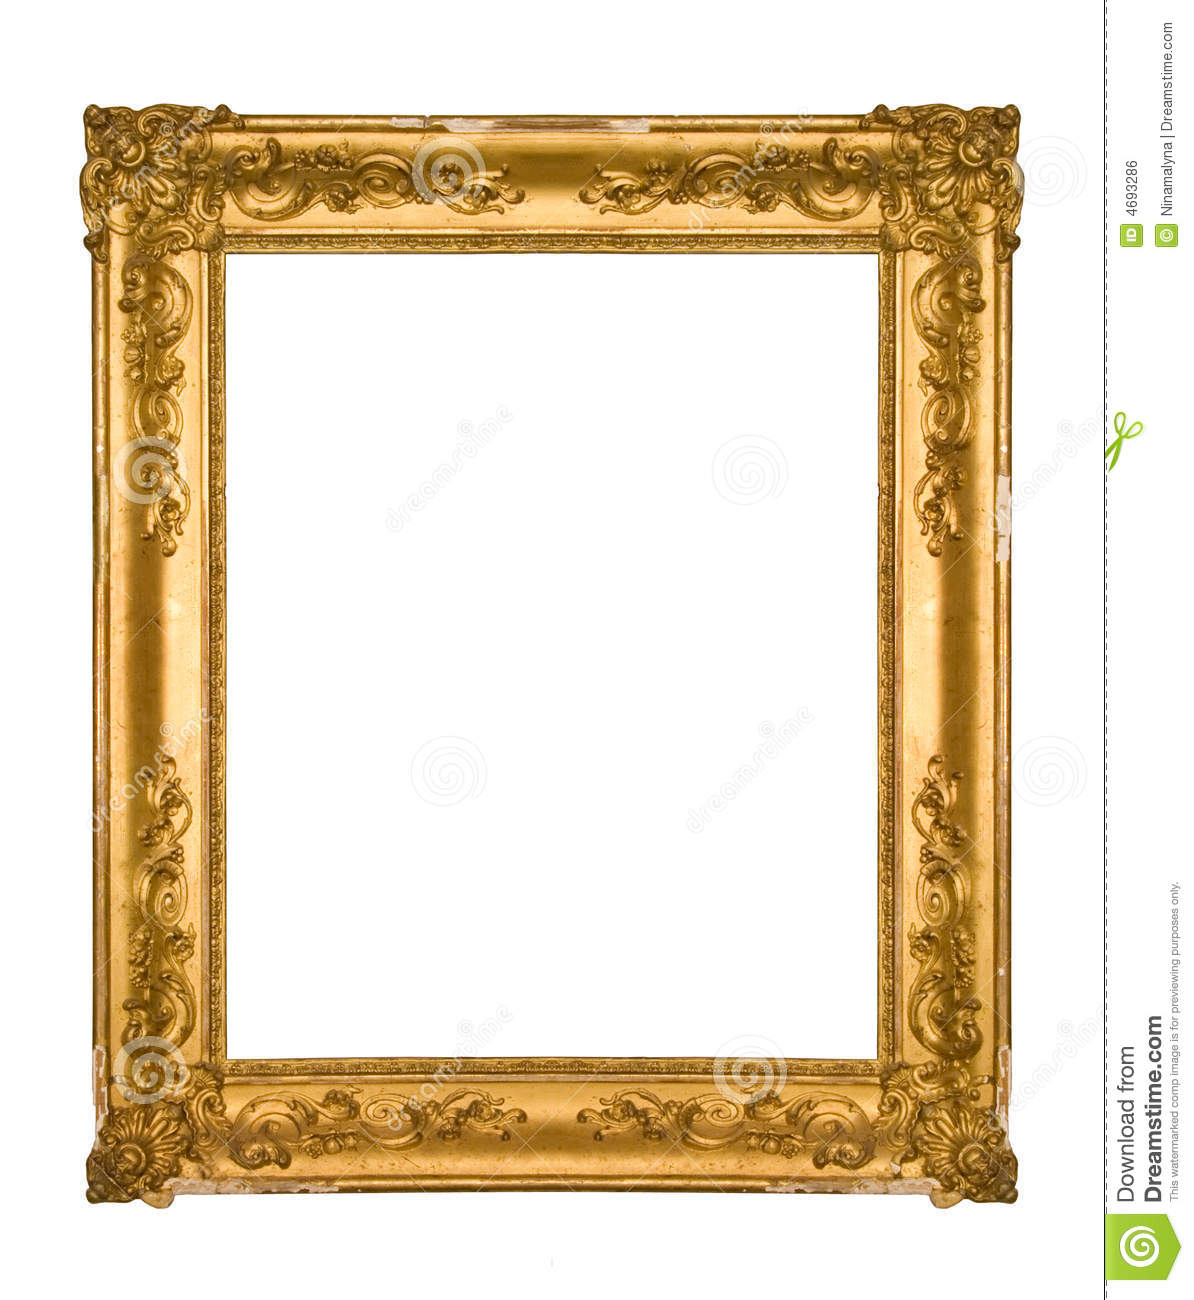 Chipped vintage gold ornate frame stock photo image of for How to make vintage frames